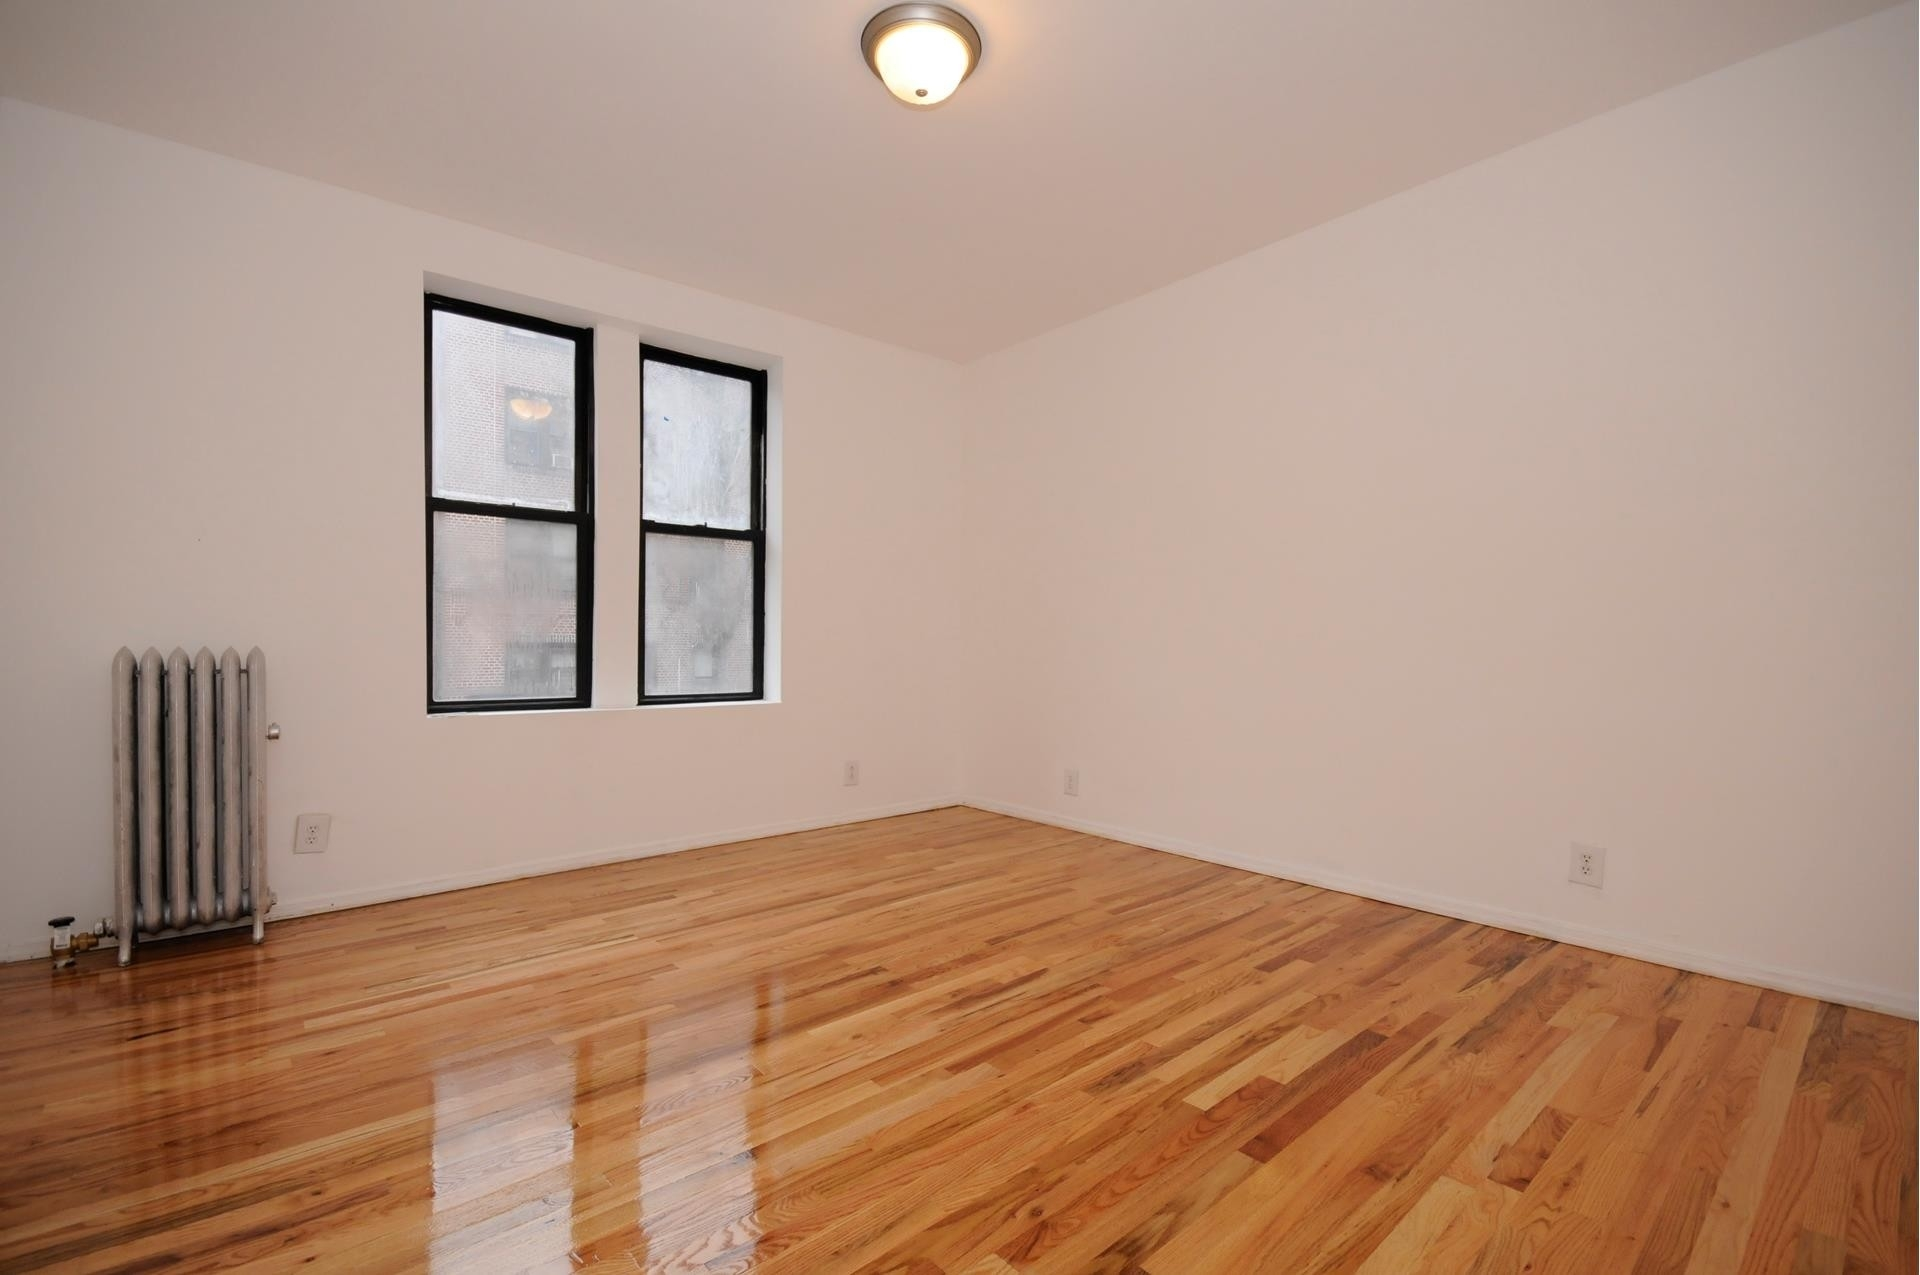 2. edificio en 859 42nd St, Sunset Park, Brooklyn, NY